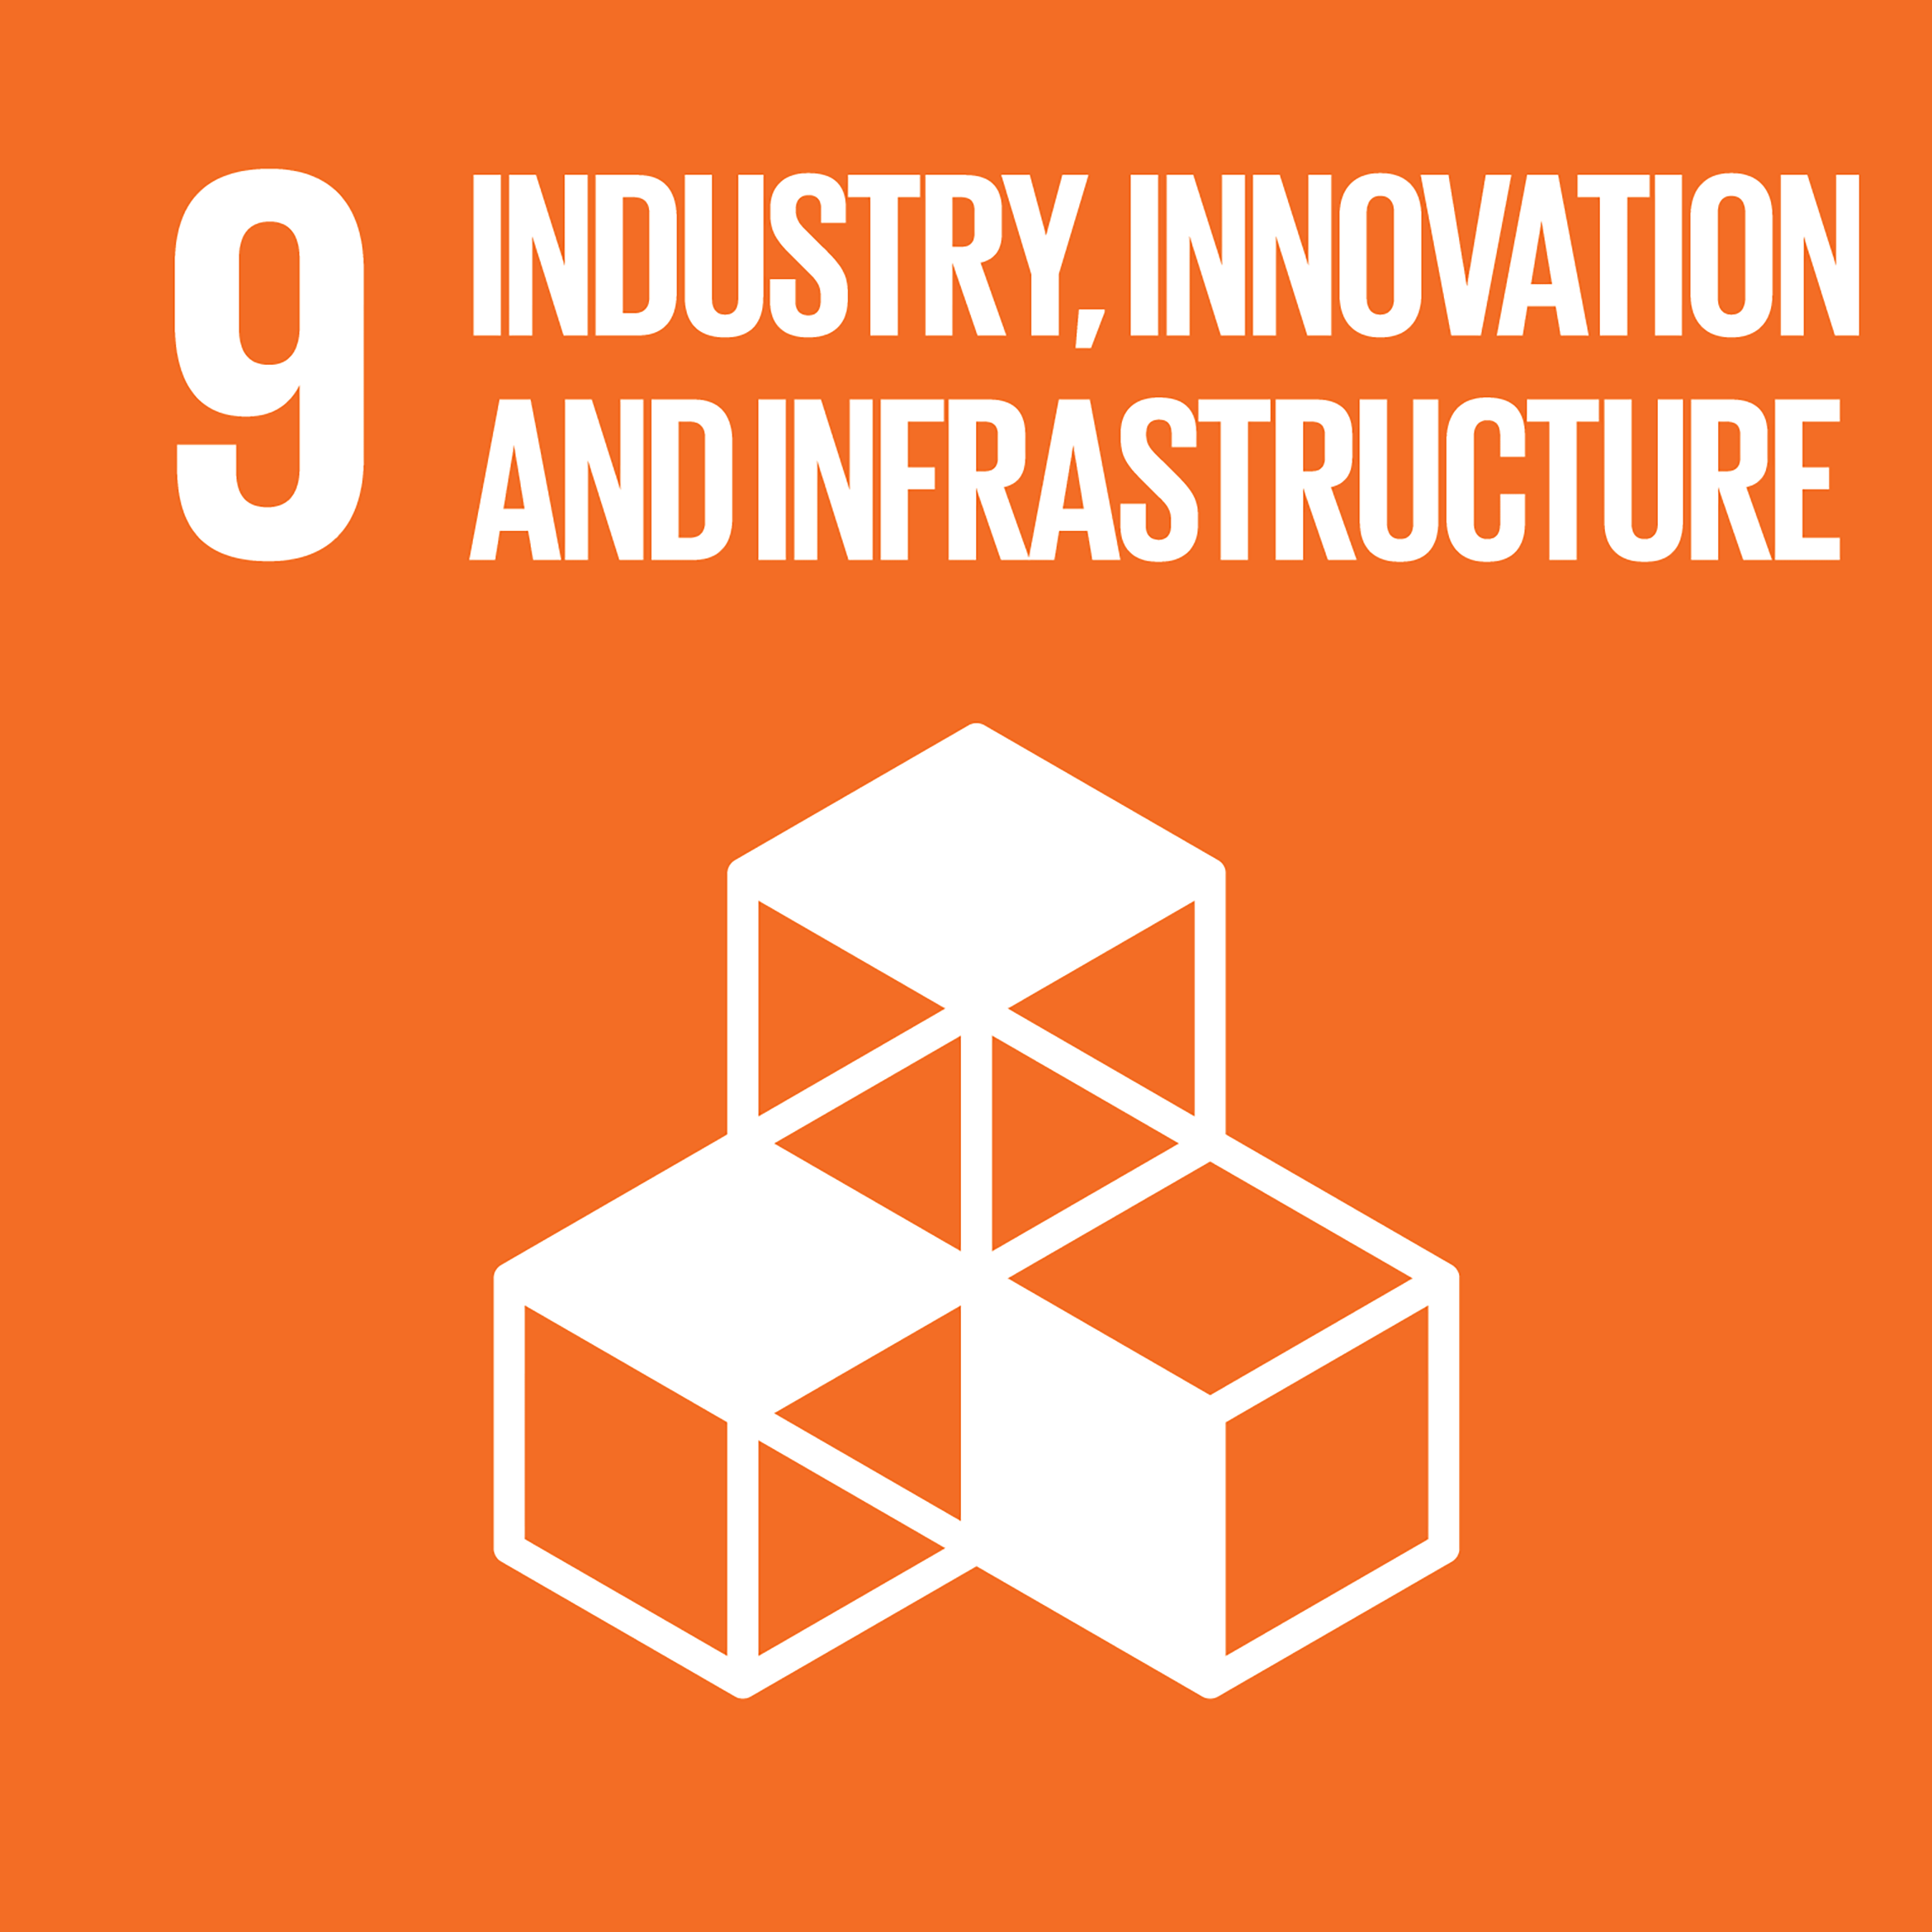 SDG-industry-innovation-infrastructure